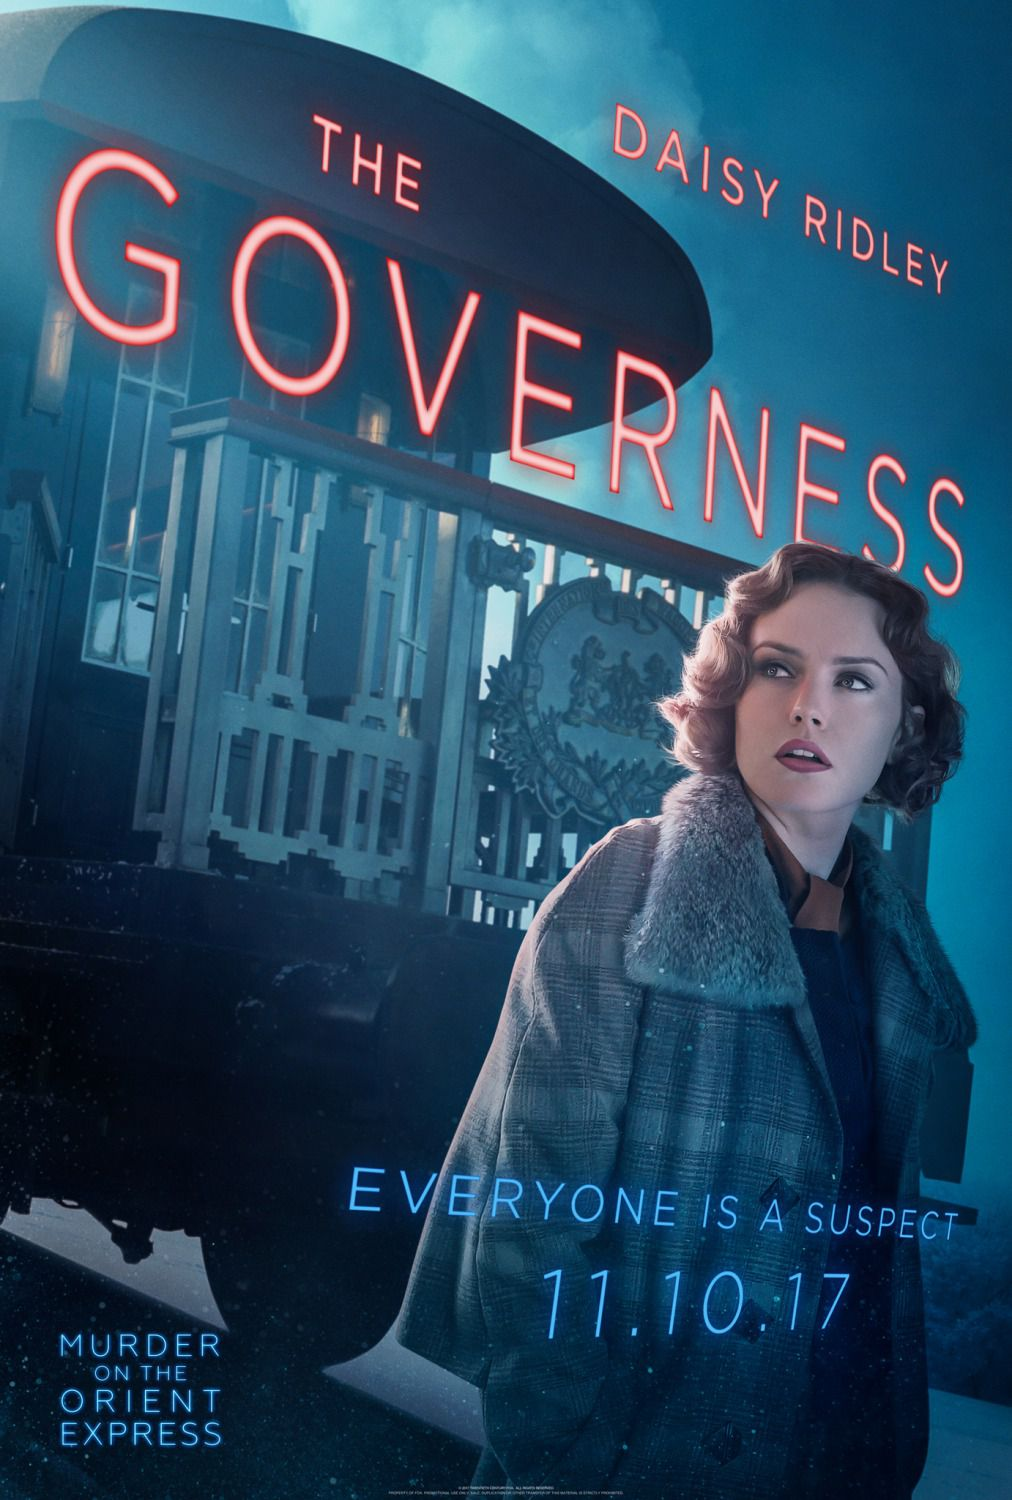 Daisy Ridley - Governess